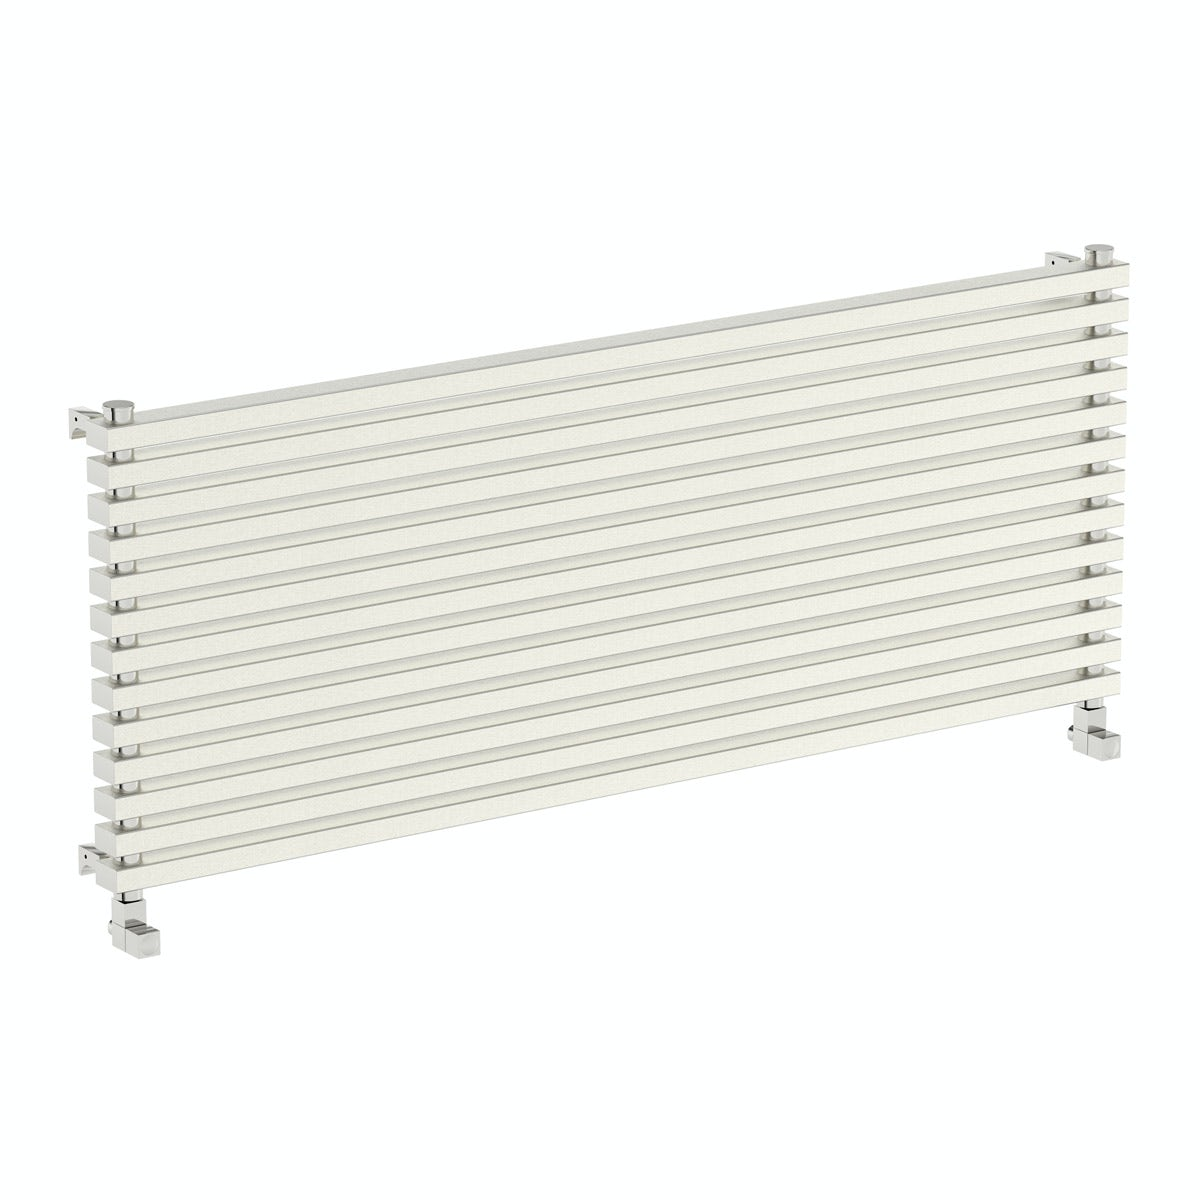 Mode Cadence horizontal radiator 600 x 1500 - Sold by Victoria Plum